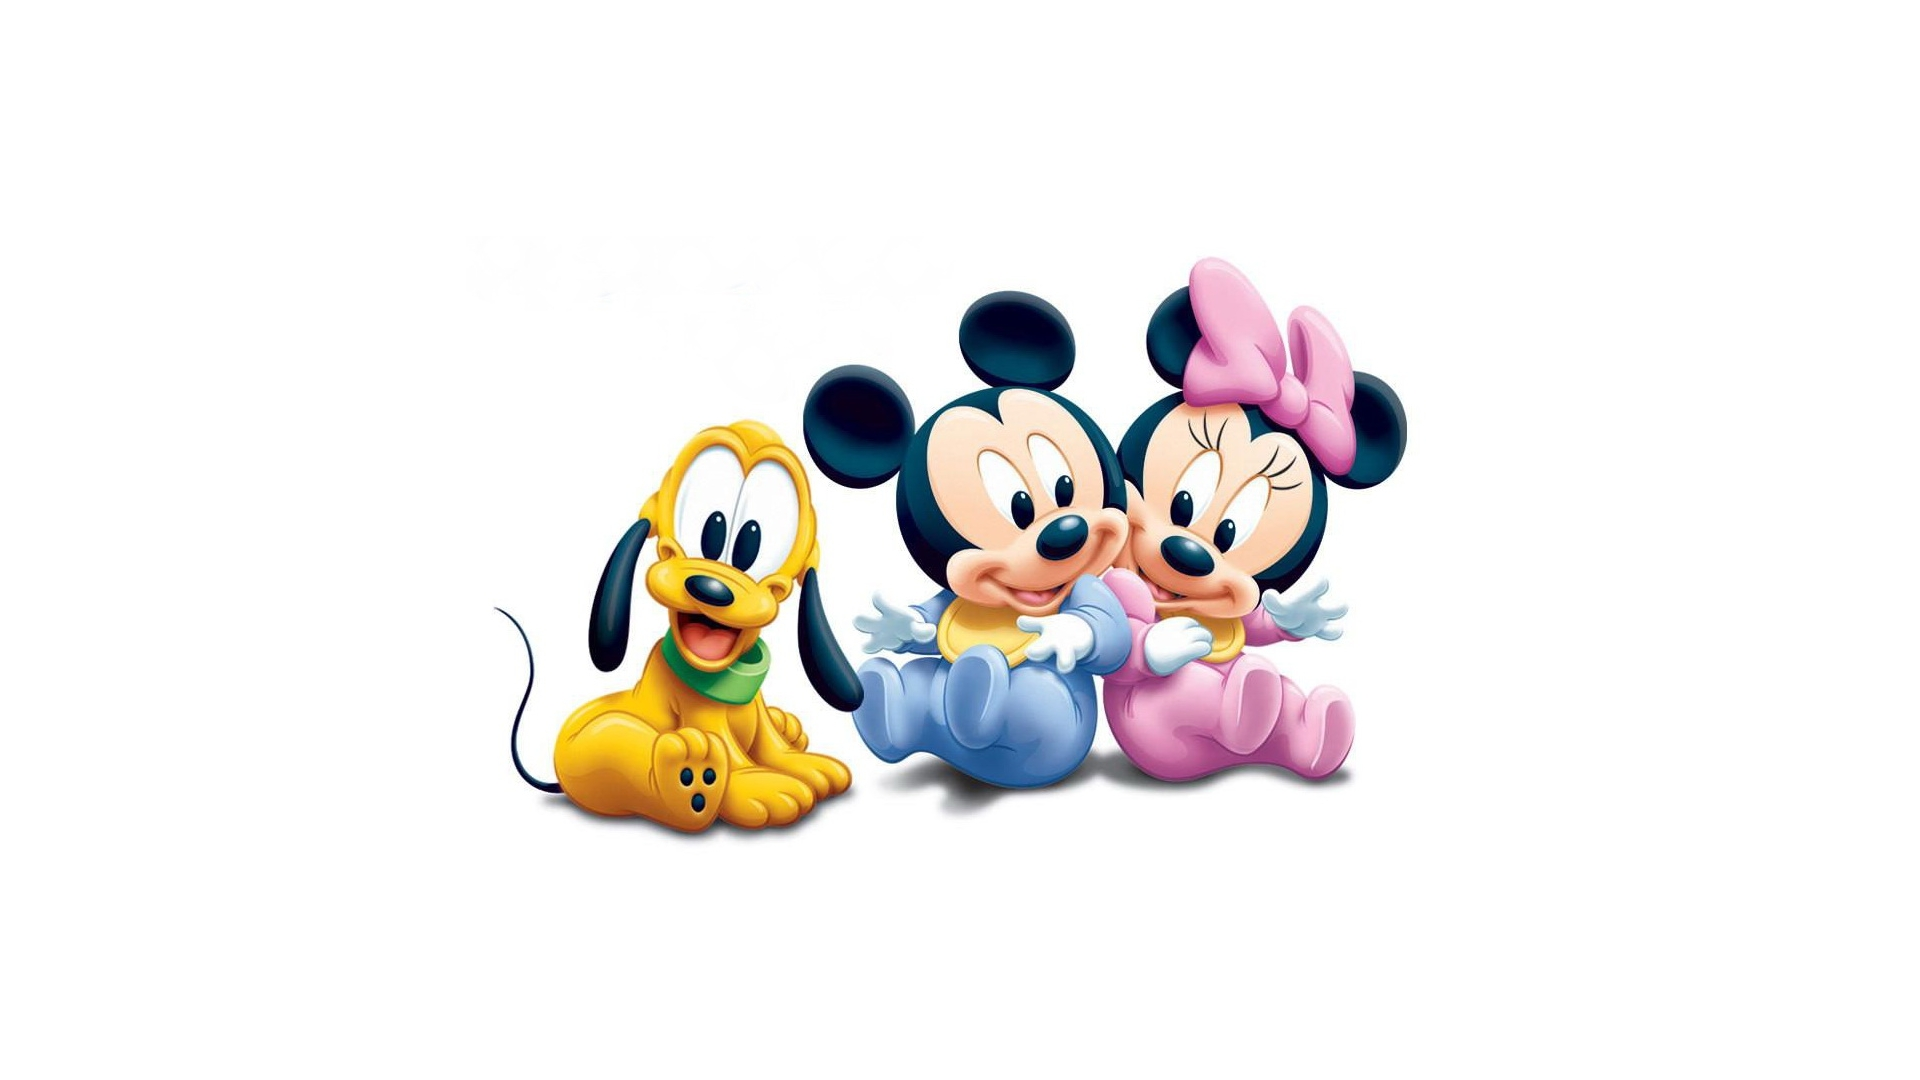 Disney Cartoon Baby Mickey And Minnie Mouse Wallpaper Cute